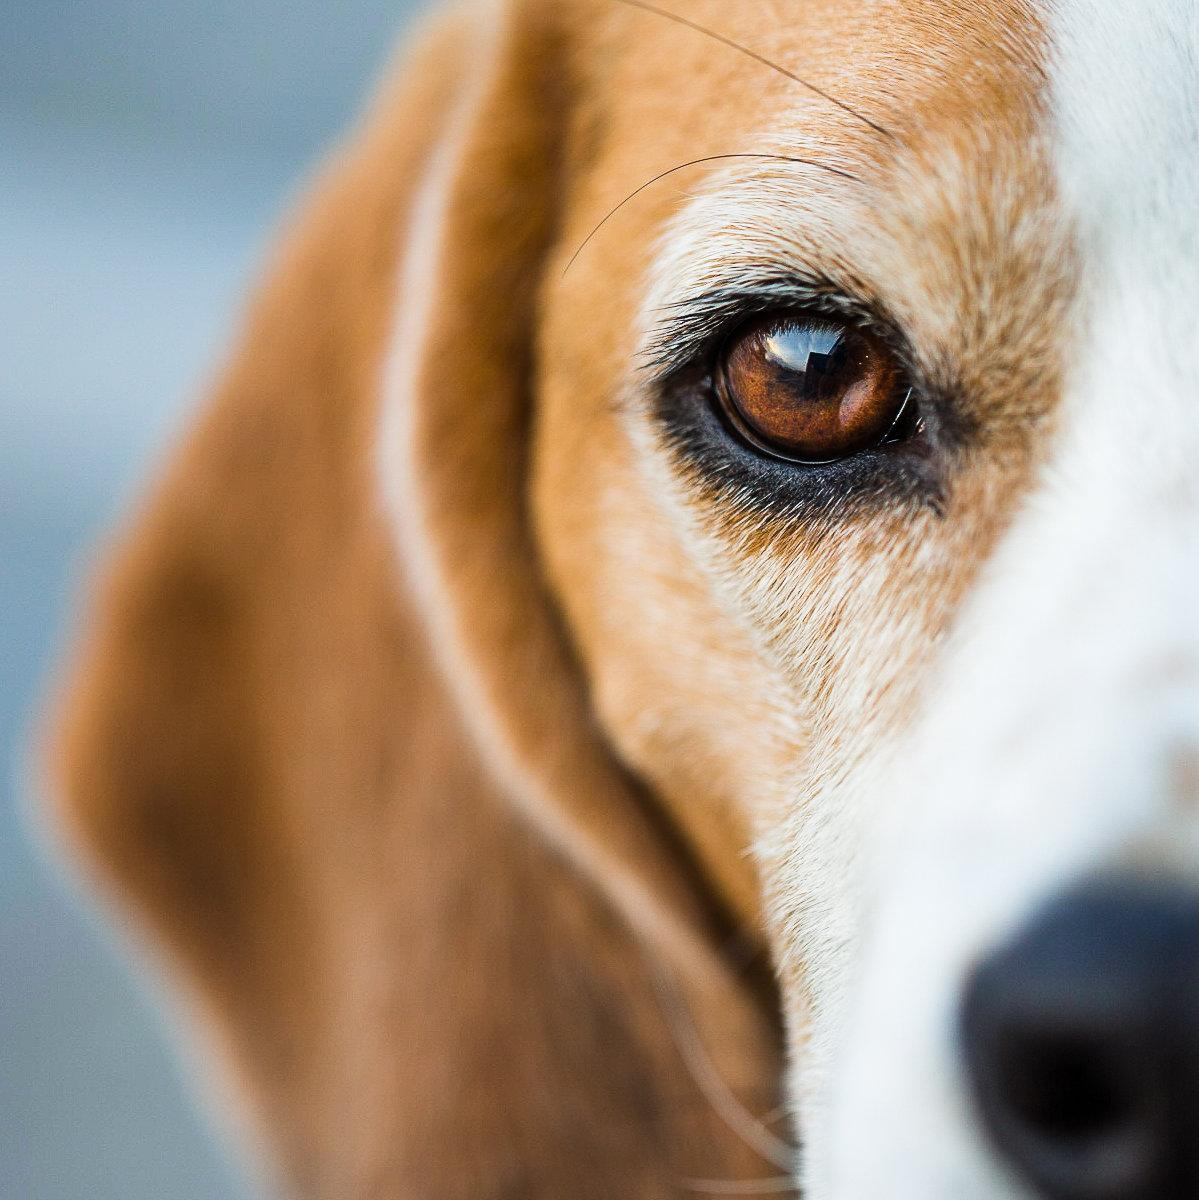 5 Dogs Died After Eating Their Owners' Skin Cancer Cream, FDA Warns